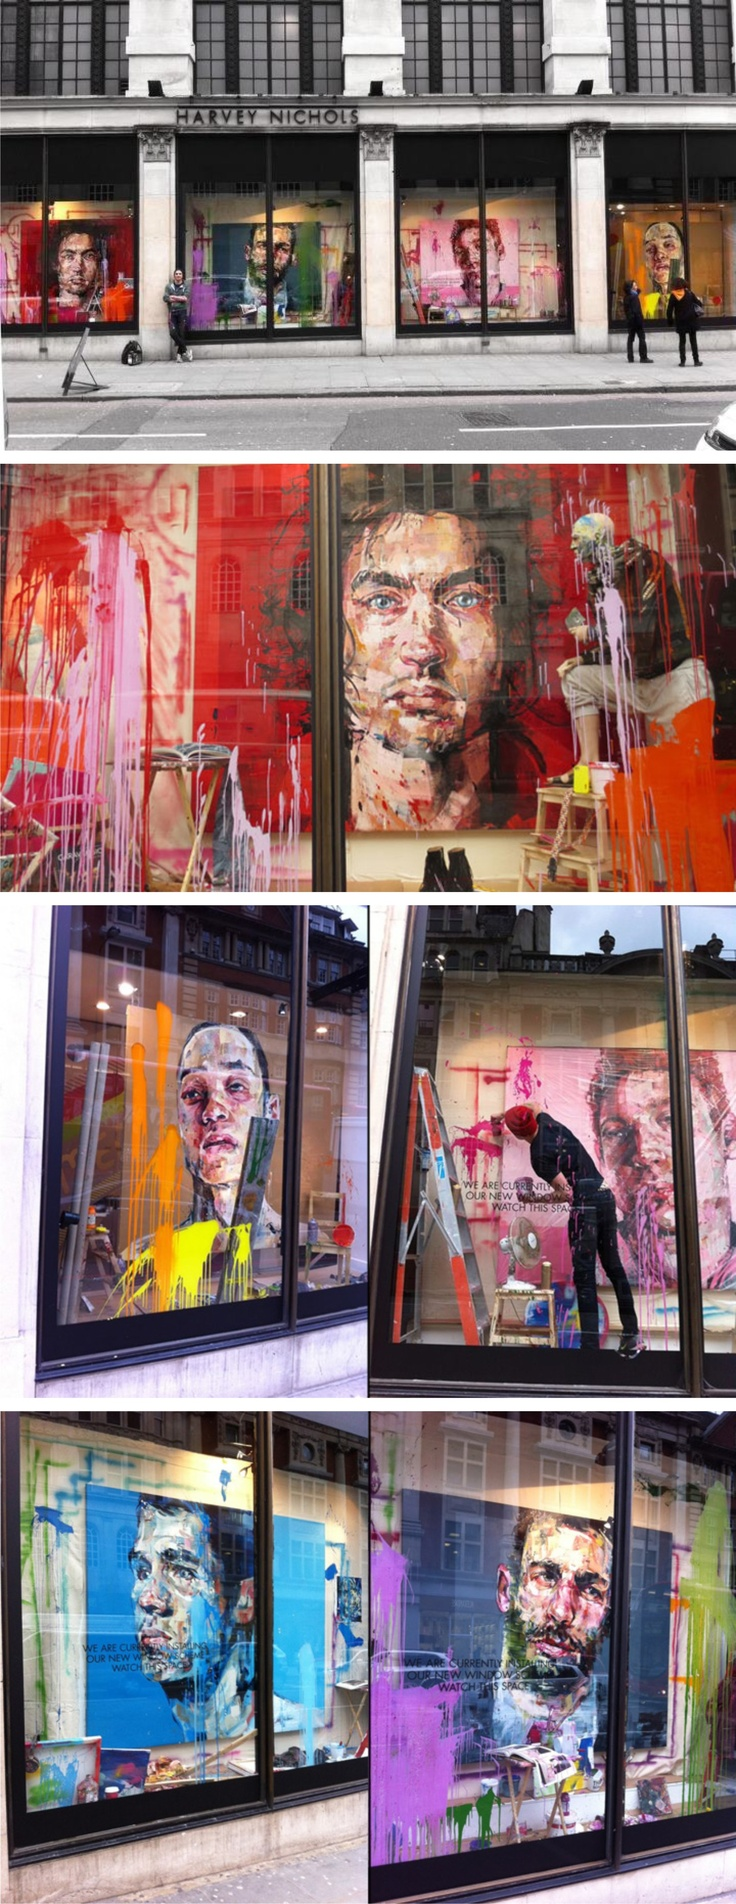 Harvey Nichols windows by Andrew Salgado